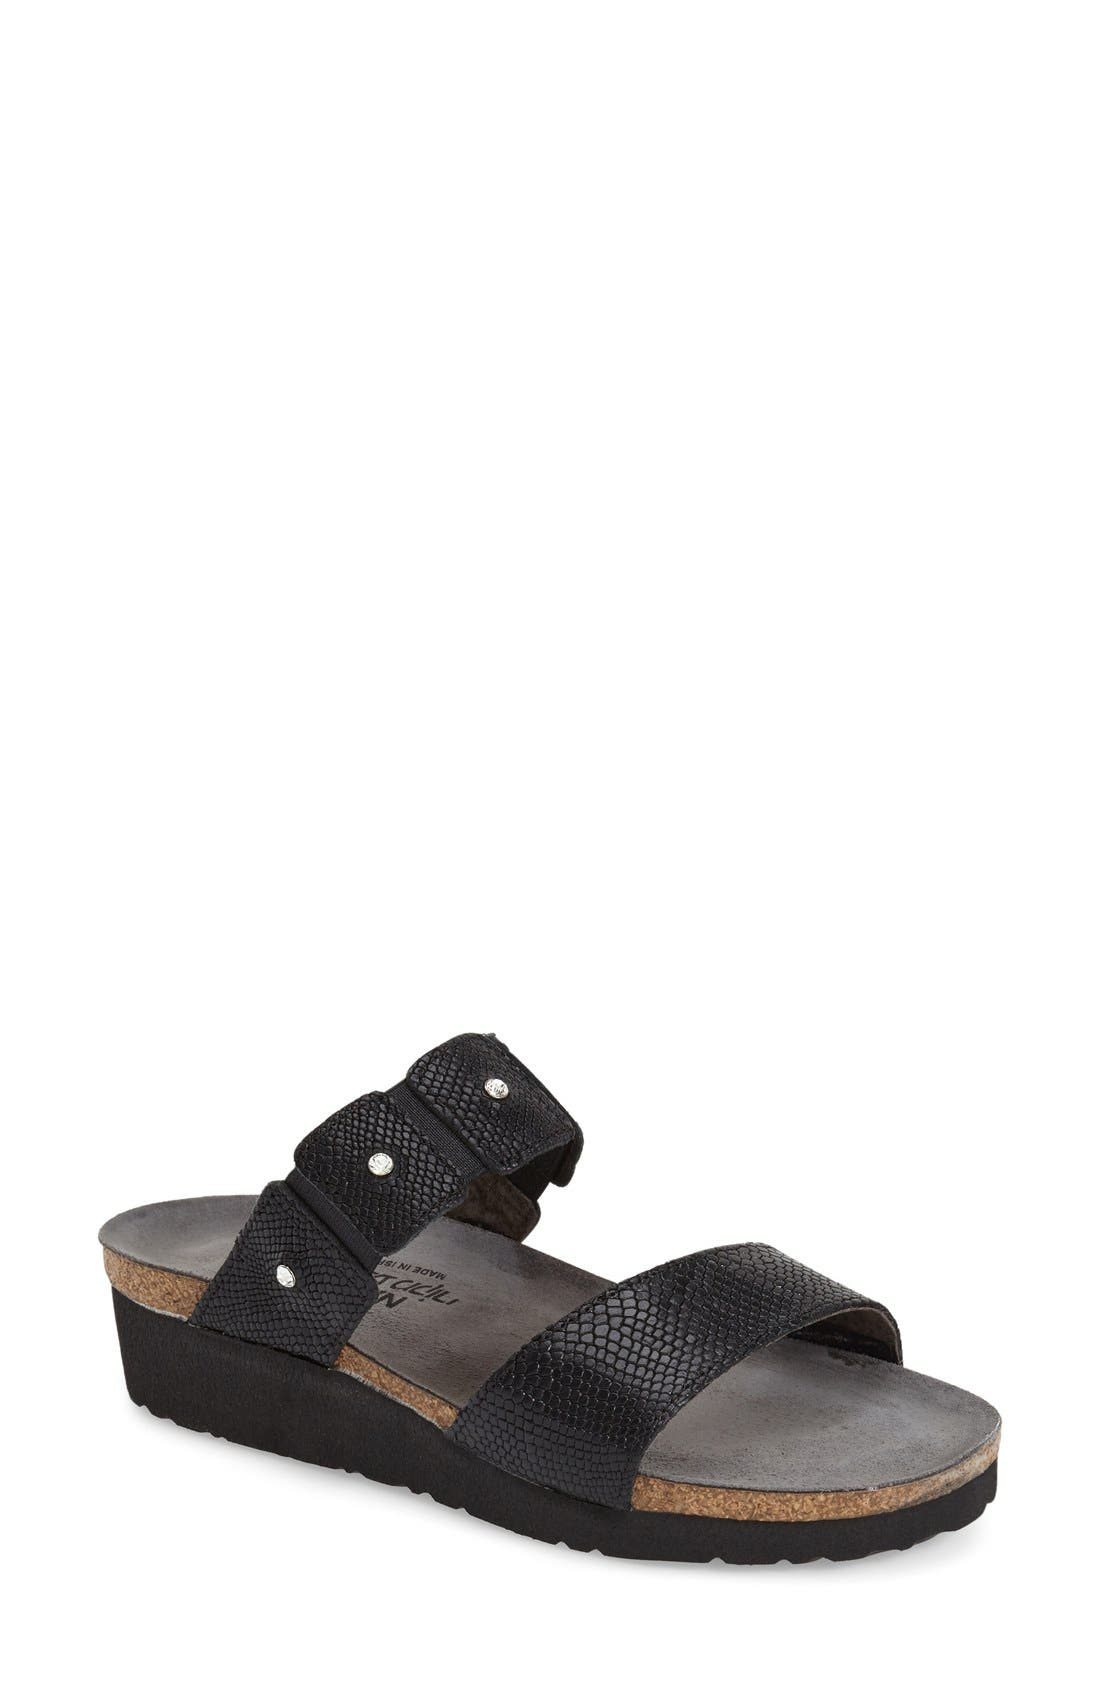 Rhinestone studs add shine to a super-comfortable flat sandal, anatomically engineered for optimal comfort and support. Style Name: Naot \\\'Ashley\\\' Sandal. Style Number: 216928. Available in stores.